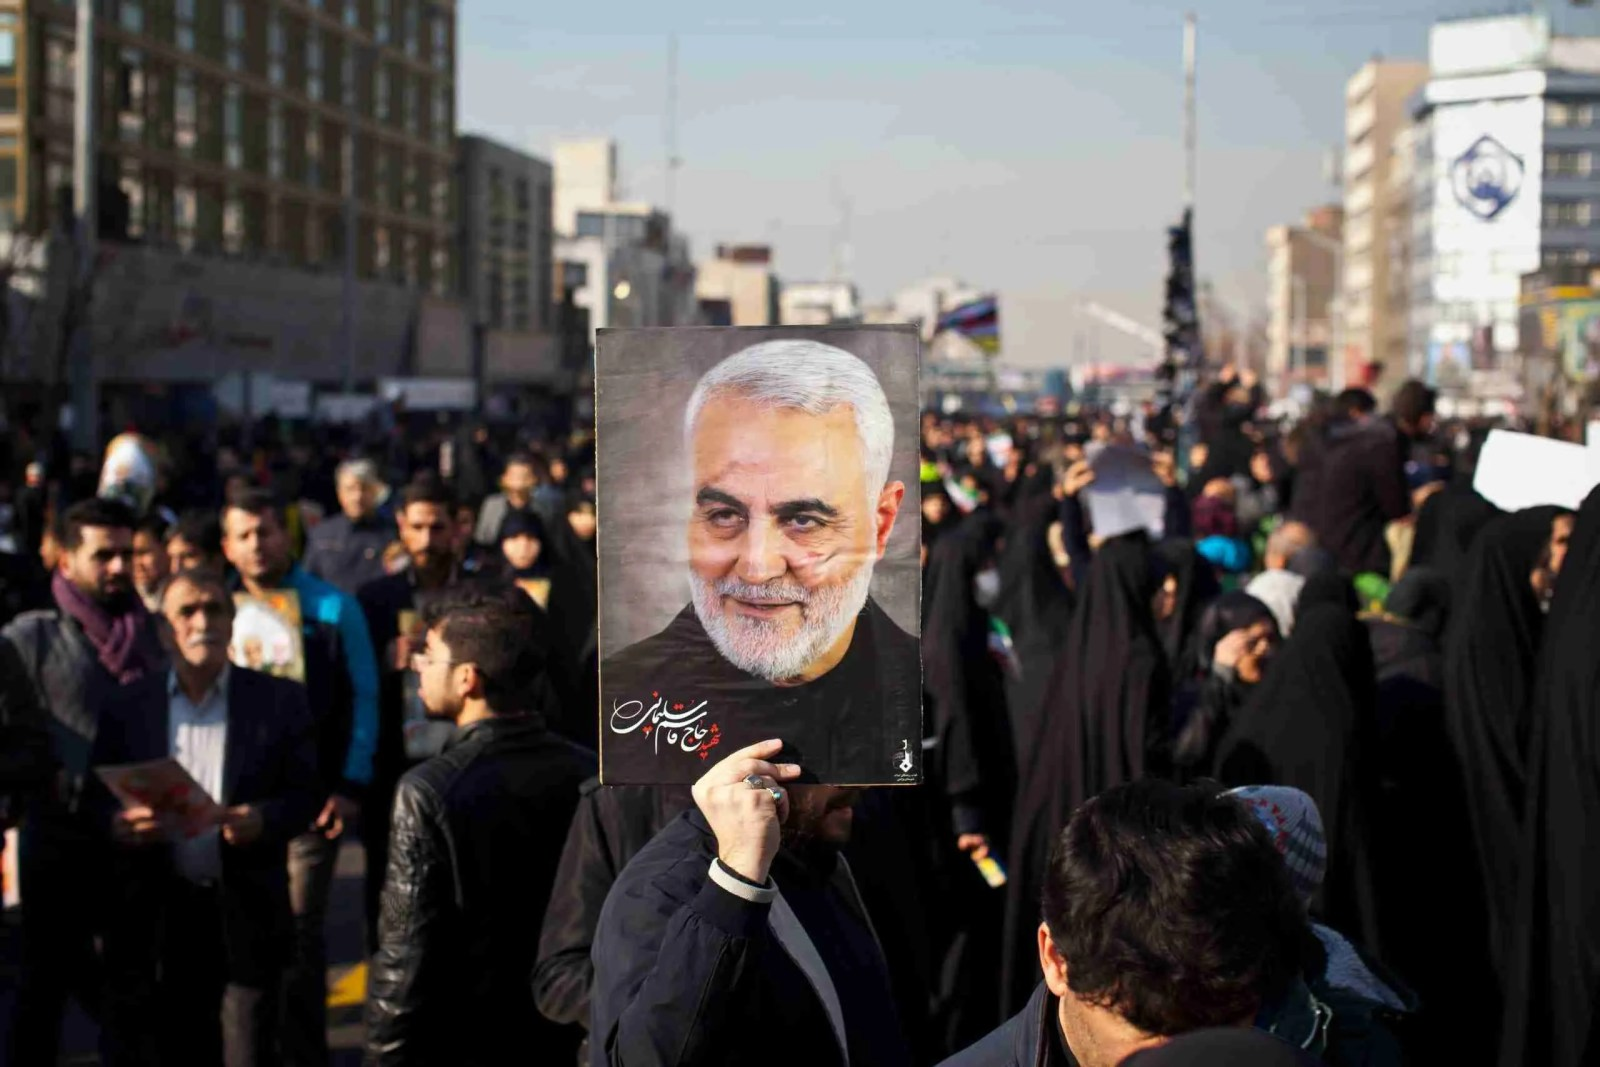 NBC Reports That Trump Planned to Kill Soleimani in 2017 - So What! 7